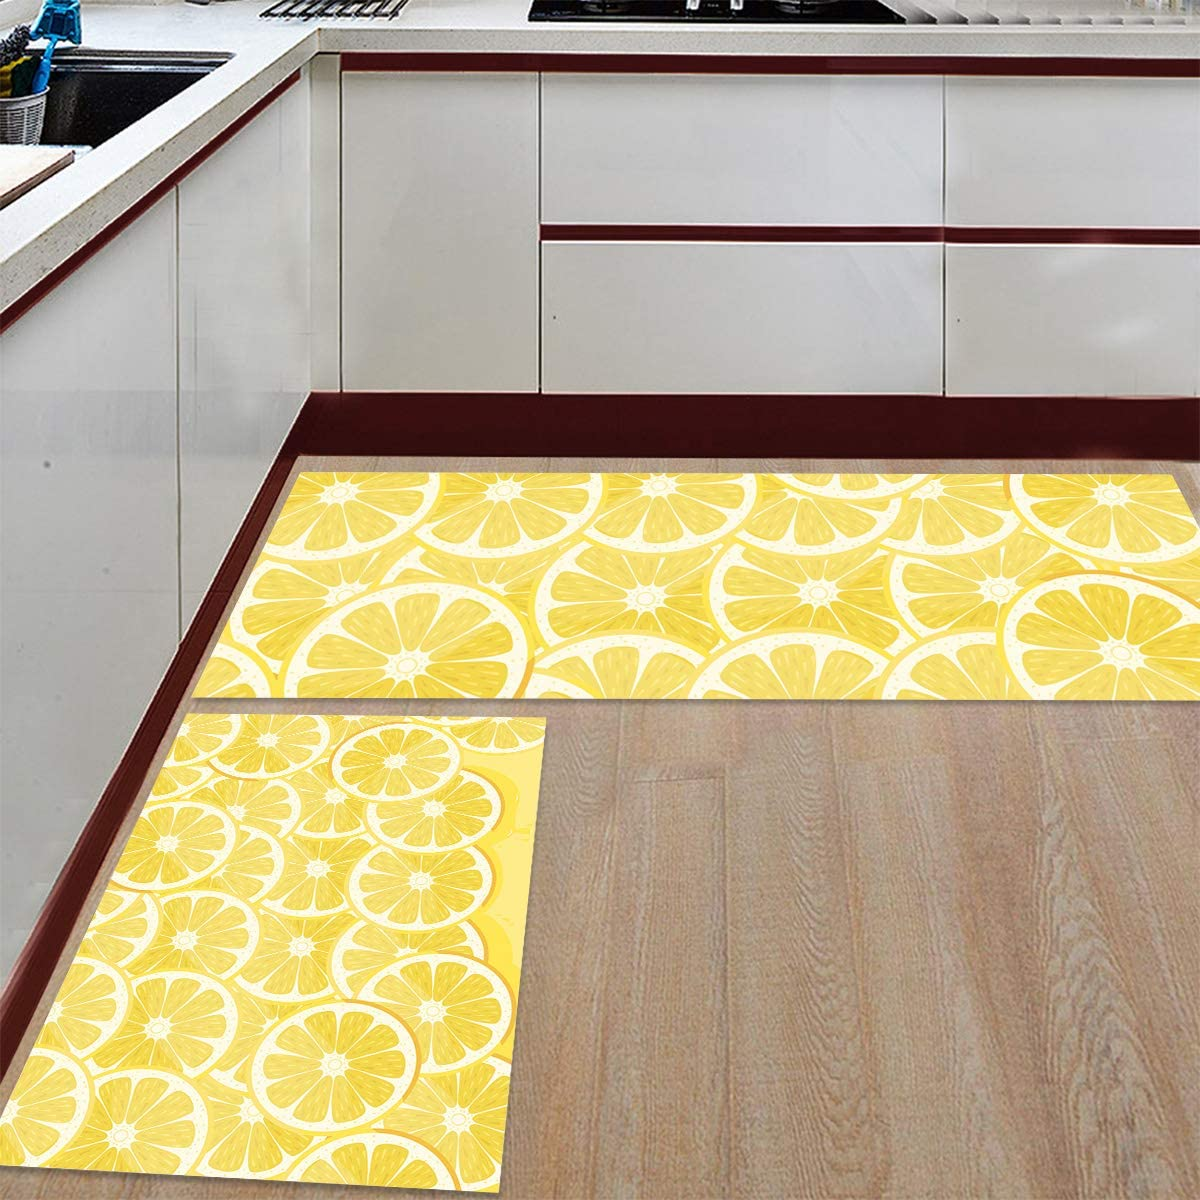 Cute Lemon Kitchen Rug Sets 9 Piece Non Slip Kitchen Mats and Rugs Yellow  Fruit Decorative Area Runner Rubber Backing Carpets Floor Doormat